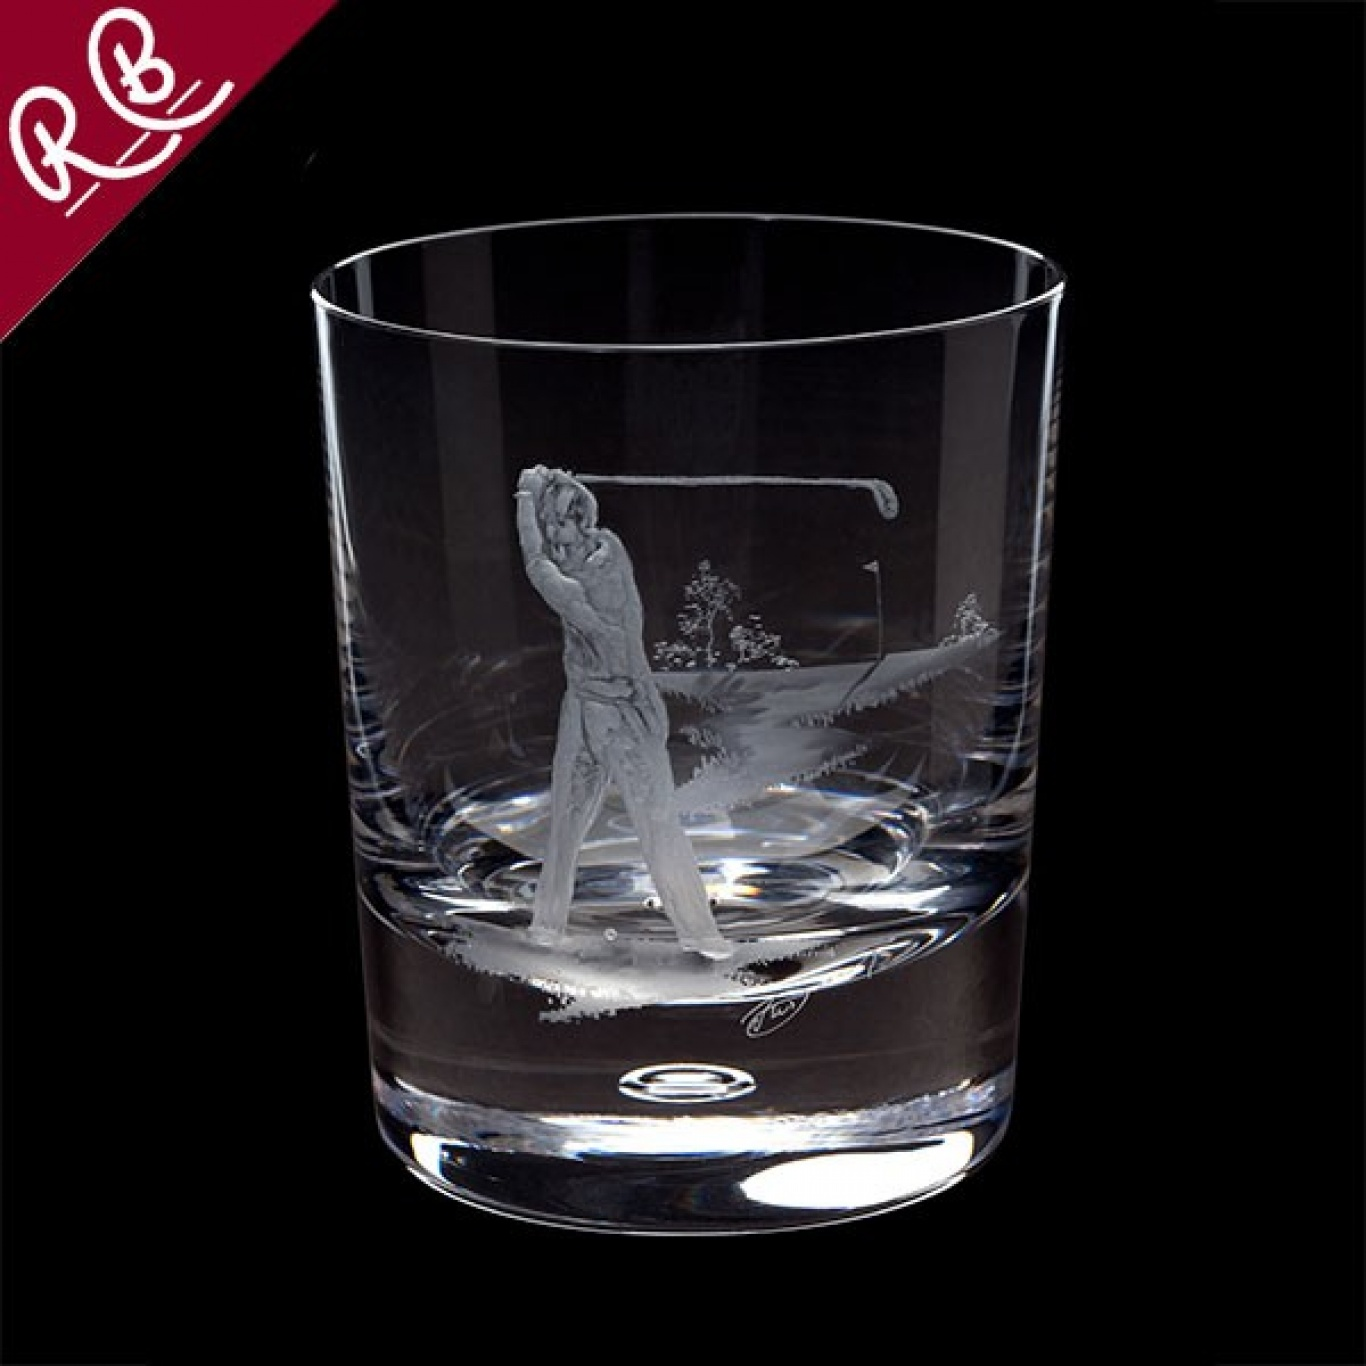 Image of Royal Brierley Engraved Golfer Tumbler